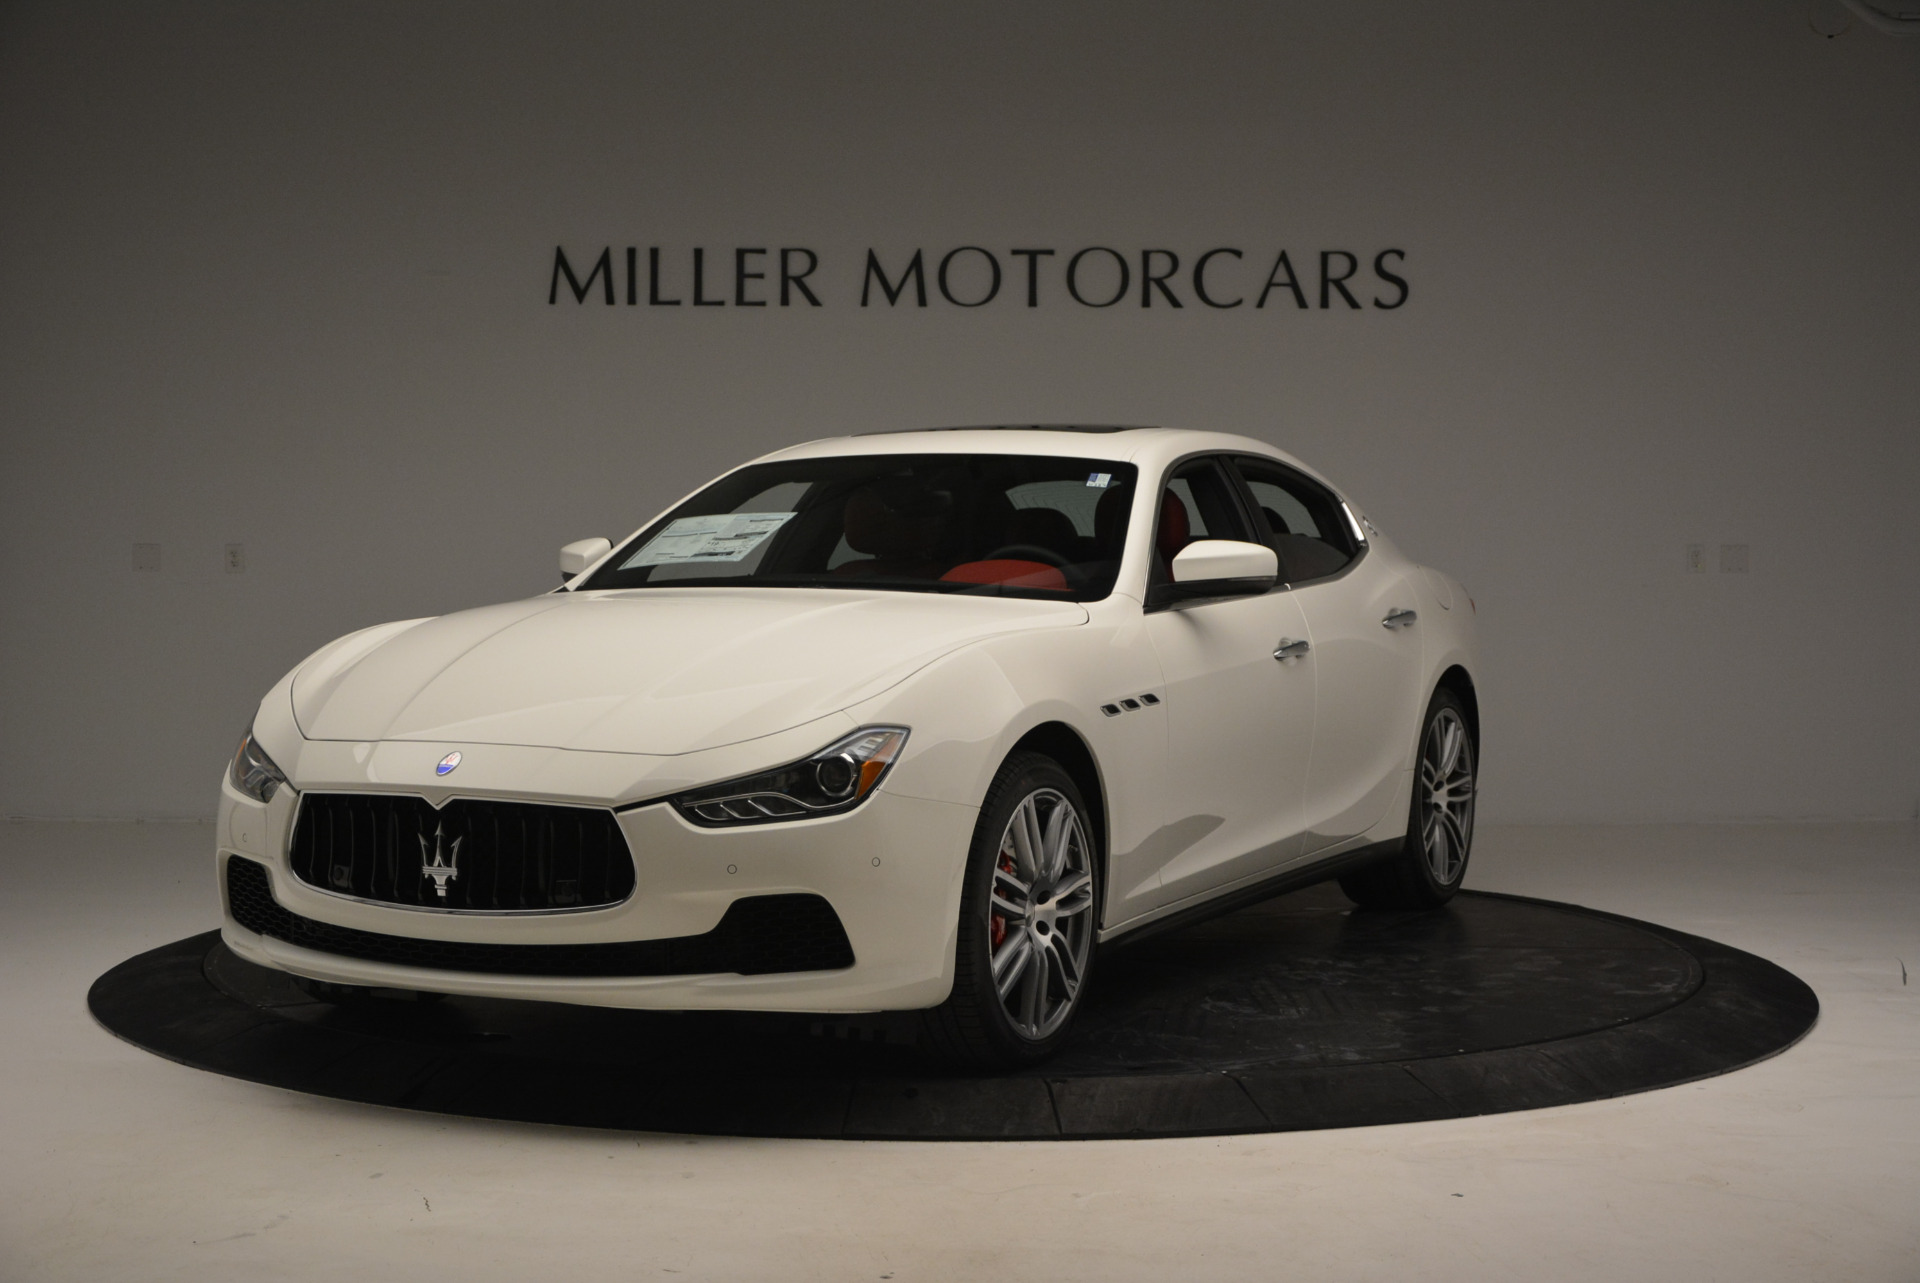 Used 2017 Maserati Ghibli S Q4 for sale $47,900 at McLaren Greenwich in Greenwich CT 06830 1